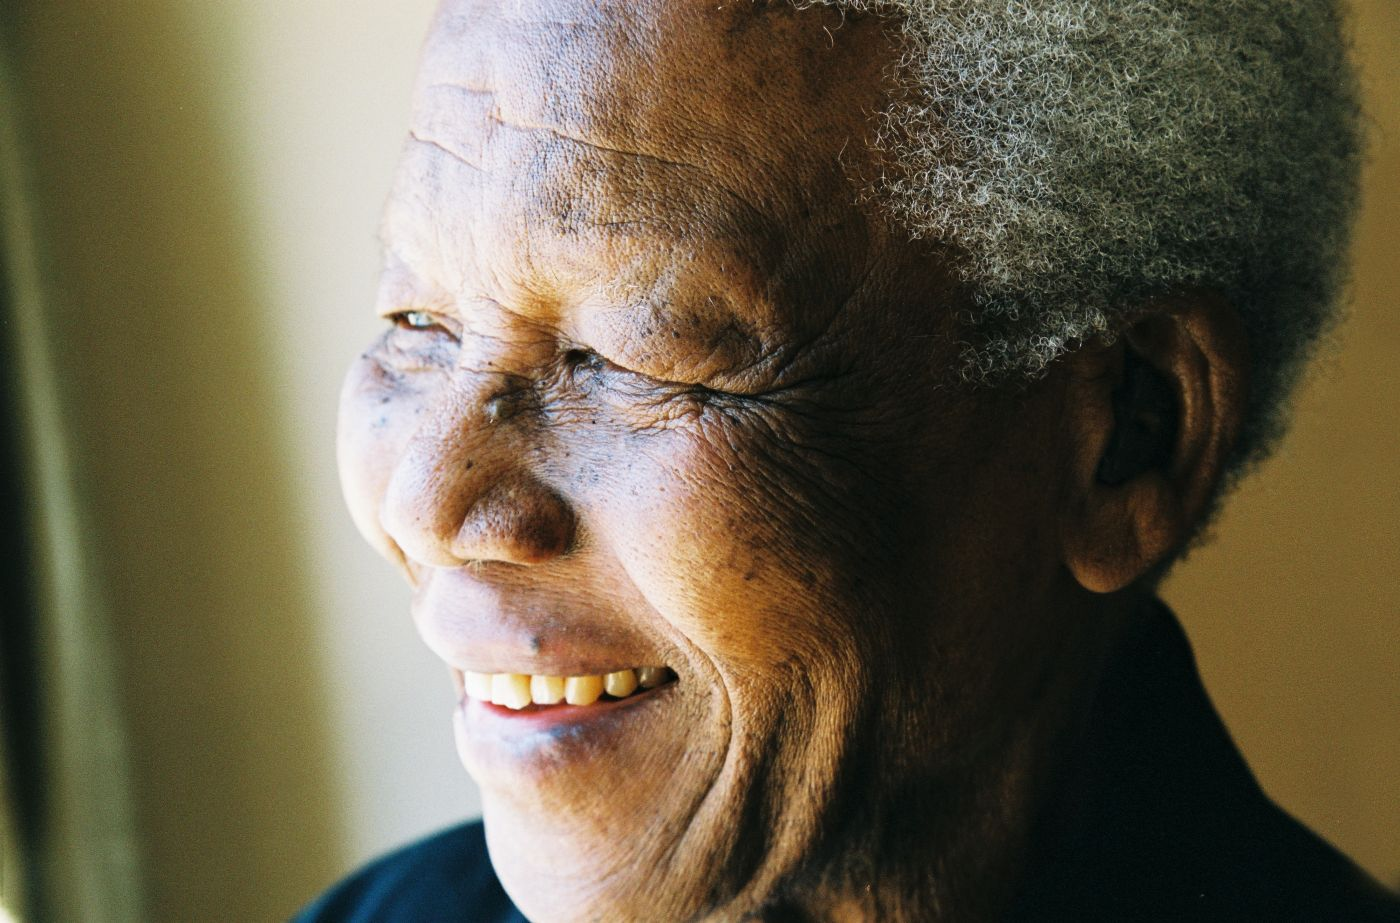 Minnesota to observe Nelson Mandela International Day